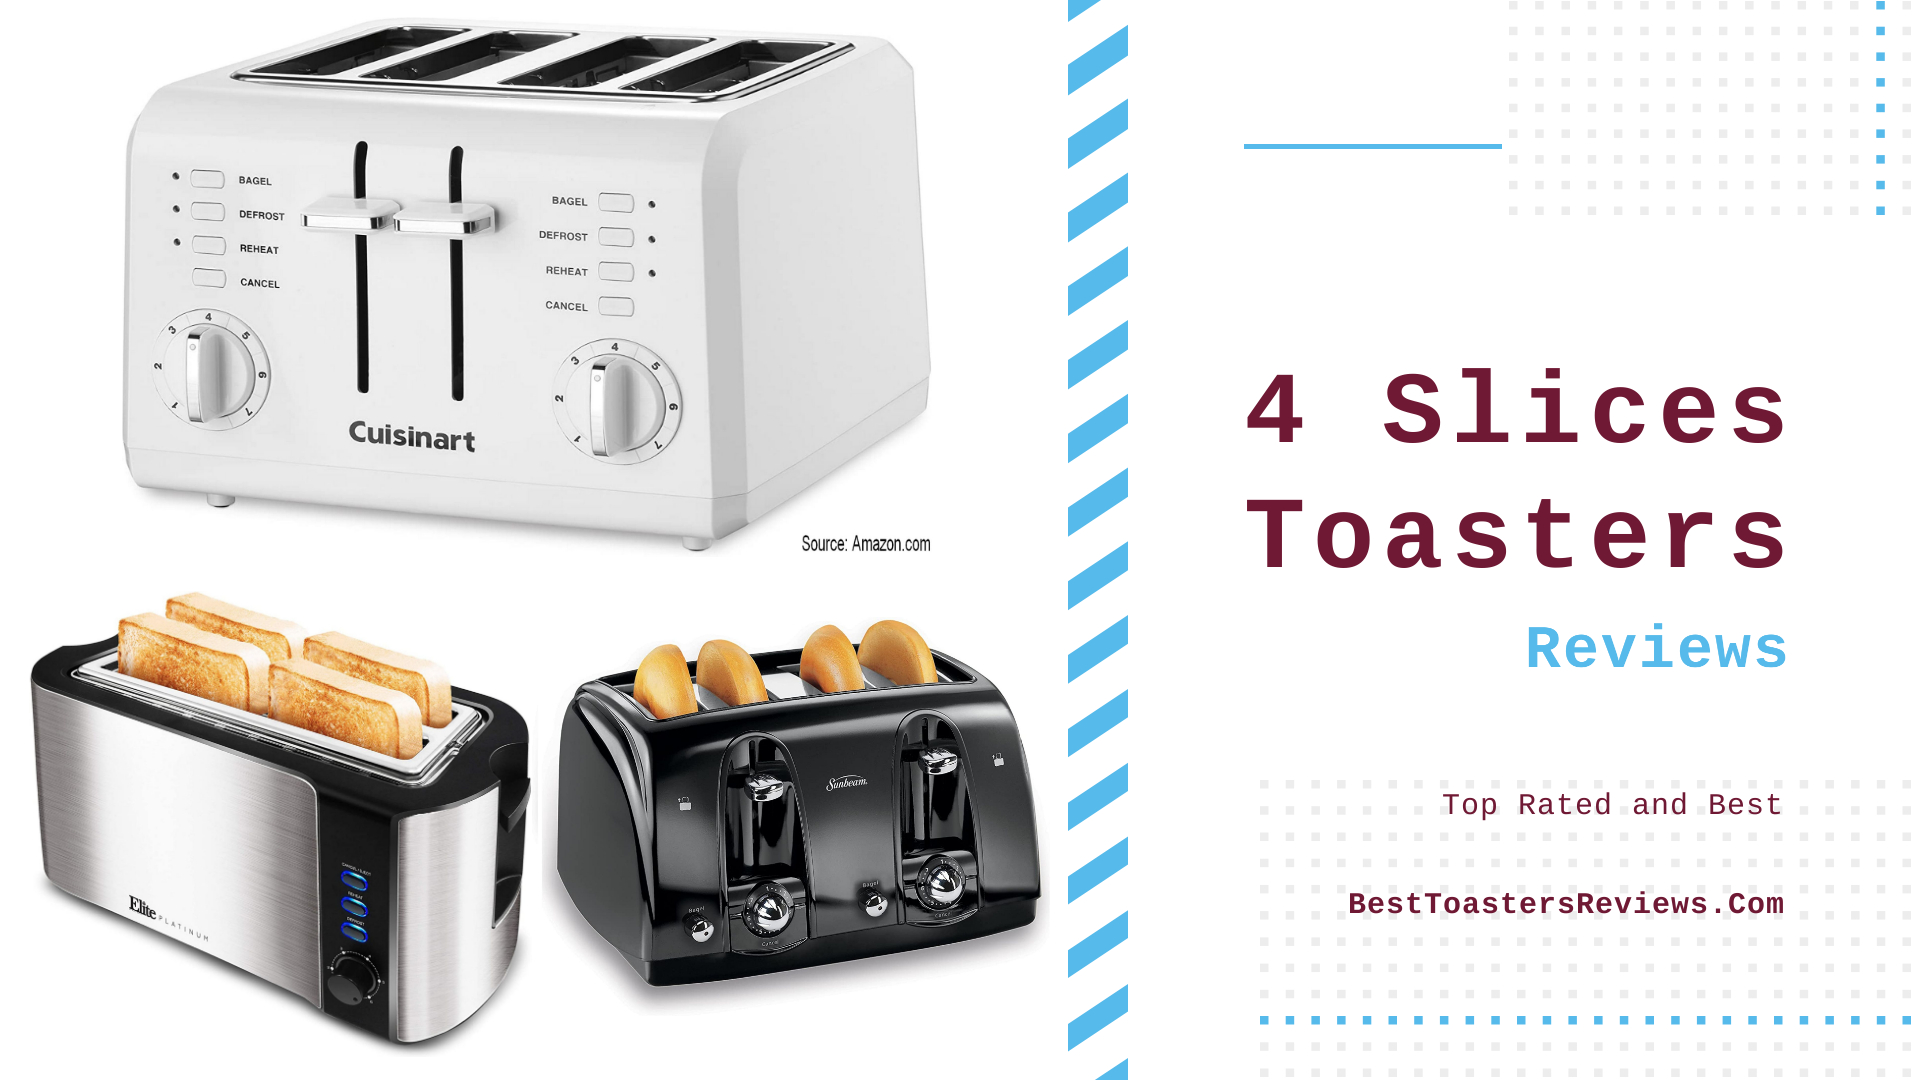 4 Slices Toasters Reviews